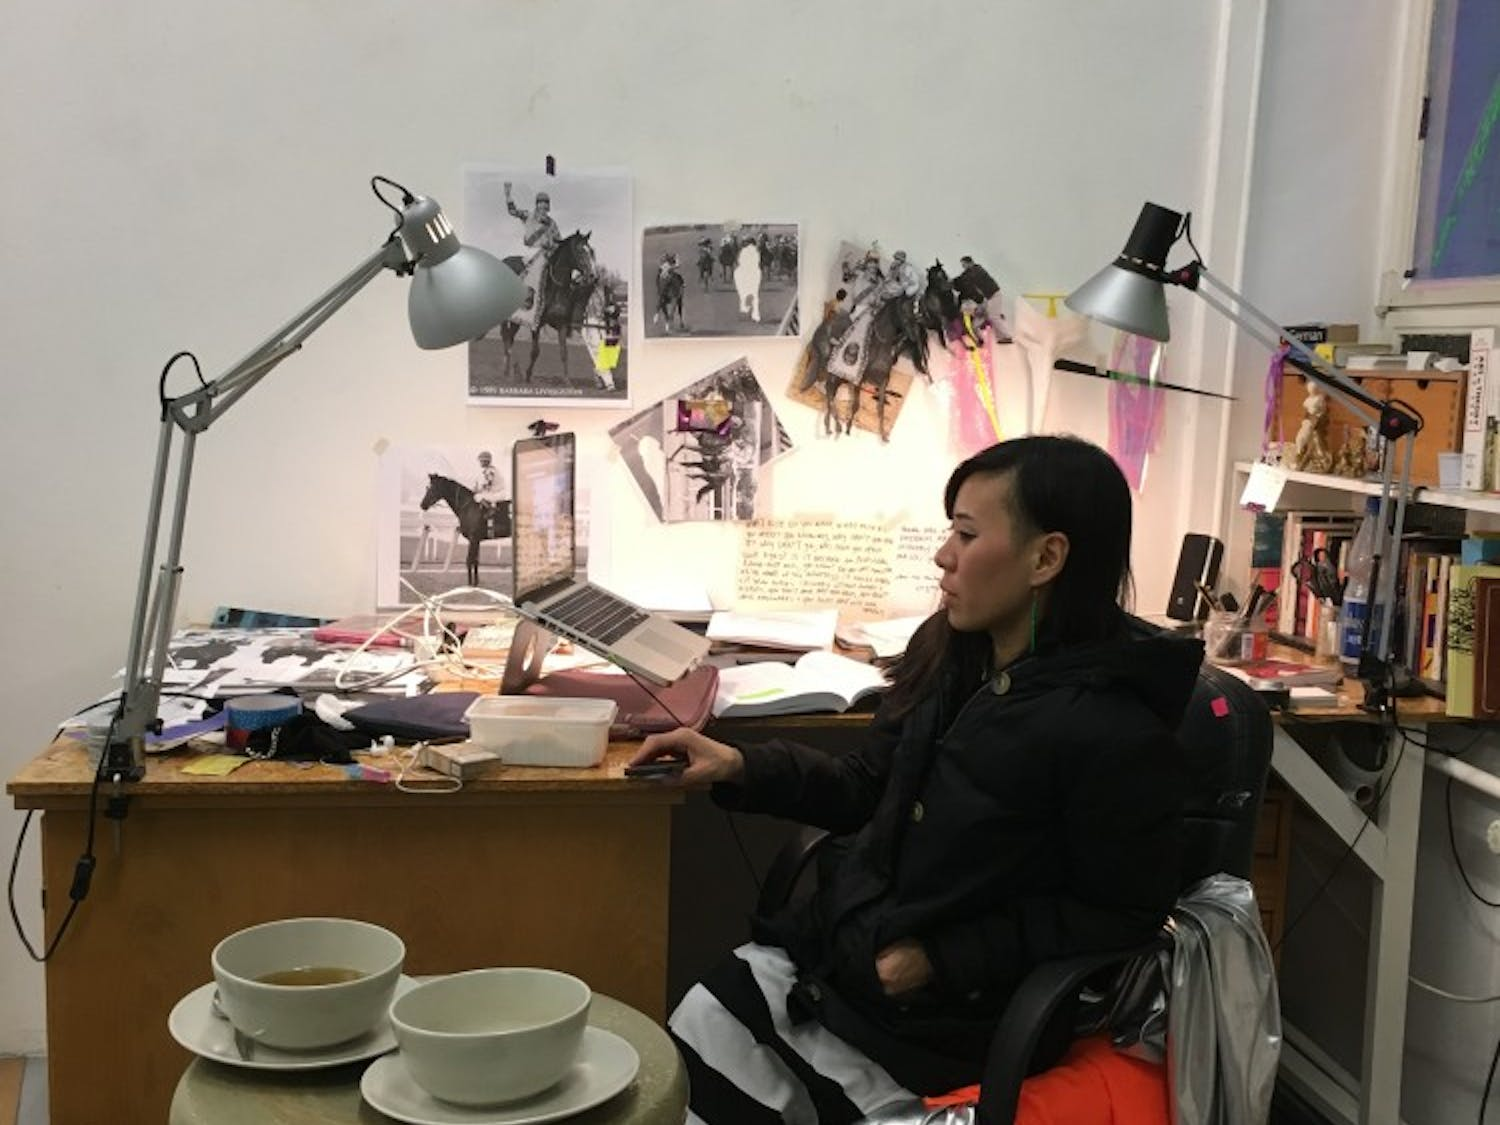 Christa Joo Hyun D'Angelo works at her desk in her Kreuzberg studio. She is currently completing an exhibition focusing on the inhumanity of horse racing, another example of politically-charged work given a platform in Berlin's art scene.